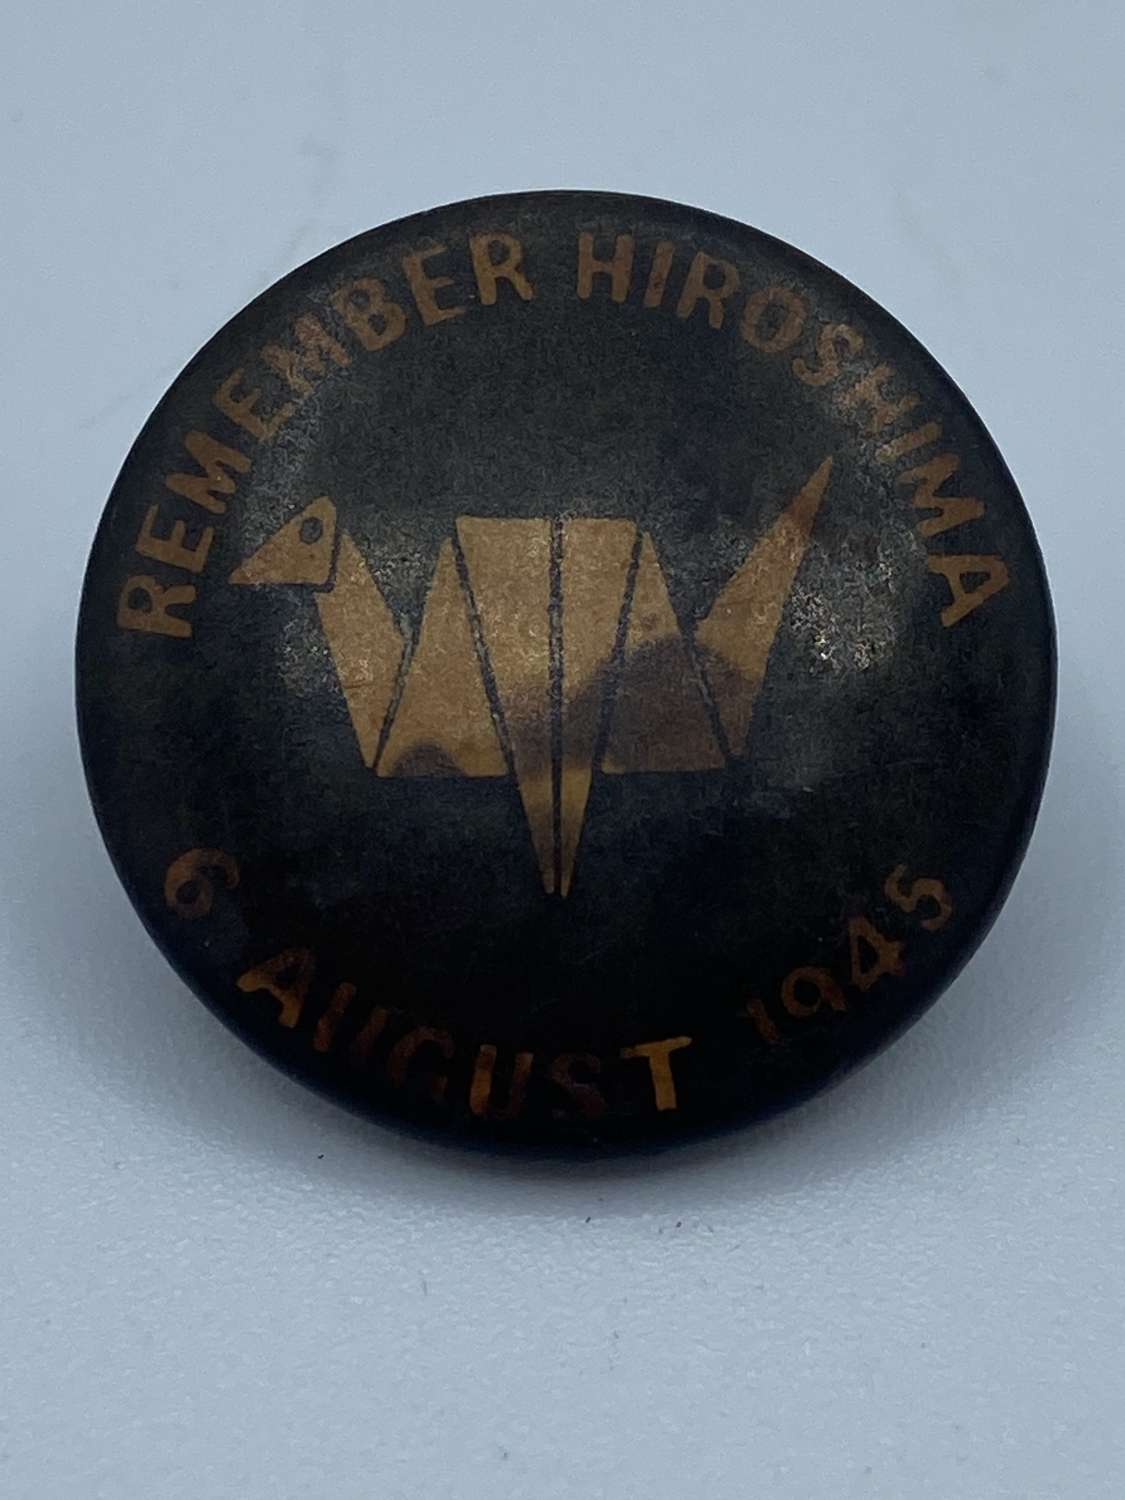 Vintage 1960s Remember Hiroshima 6 August 1945 Badge